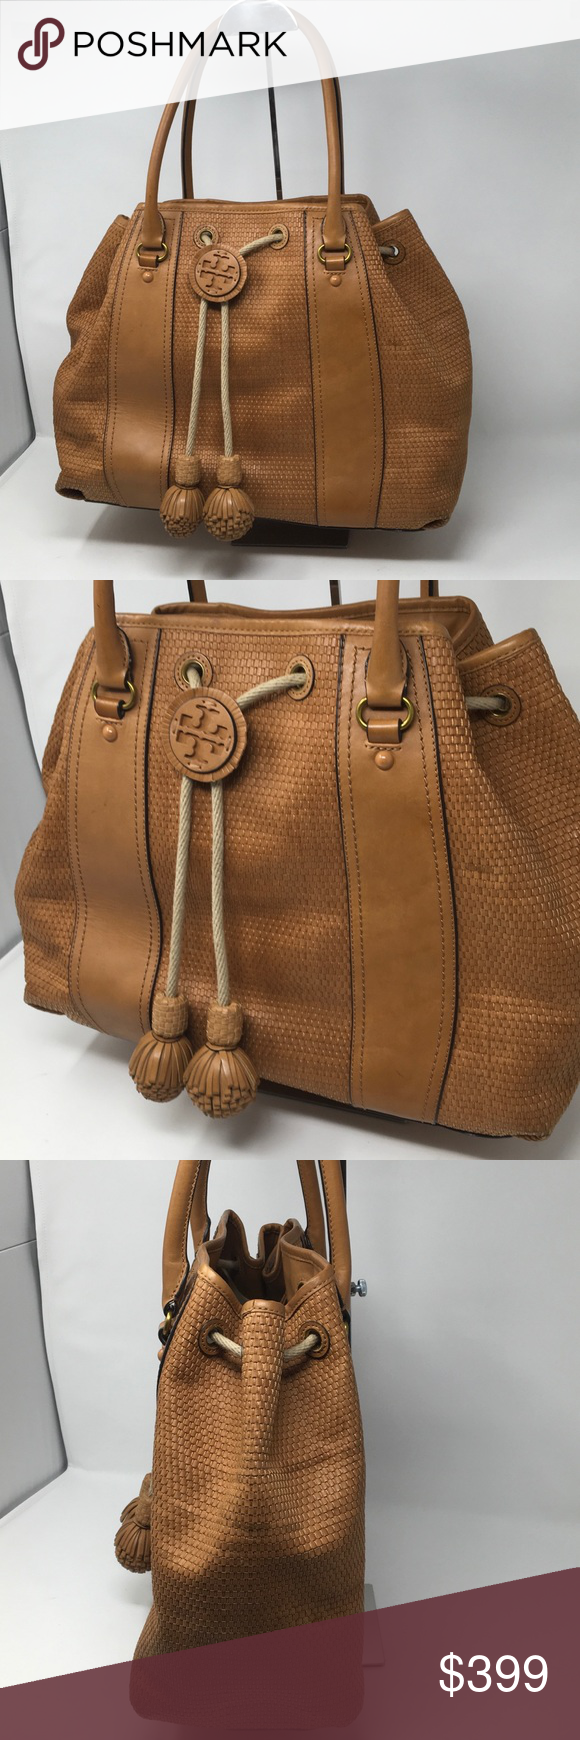 bbbfe7fcbcd Tory Burch Amalfi Woven Drawstring Tote GEORGEOUS Bag. Some spots  throughout (zoom in on